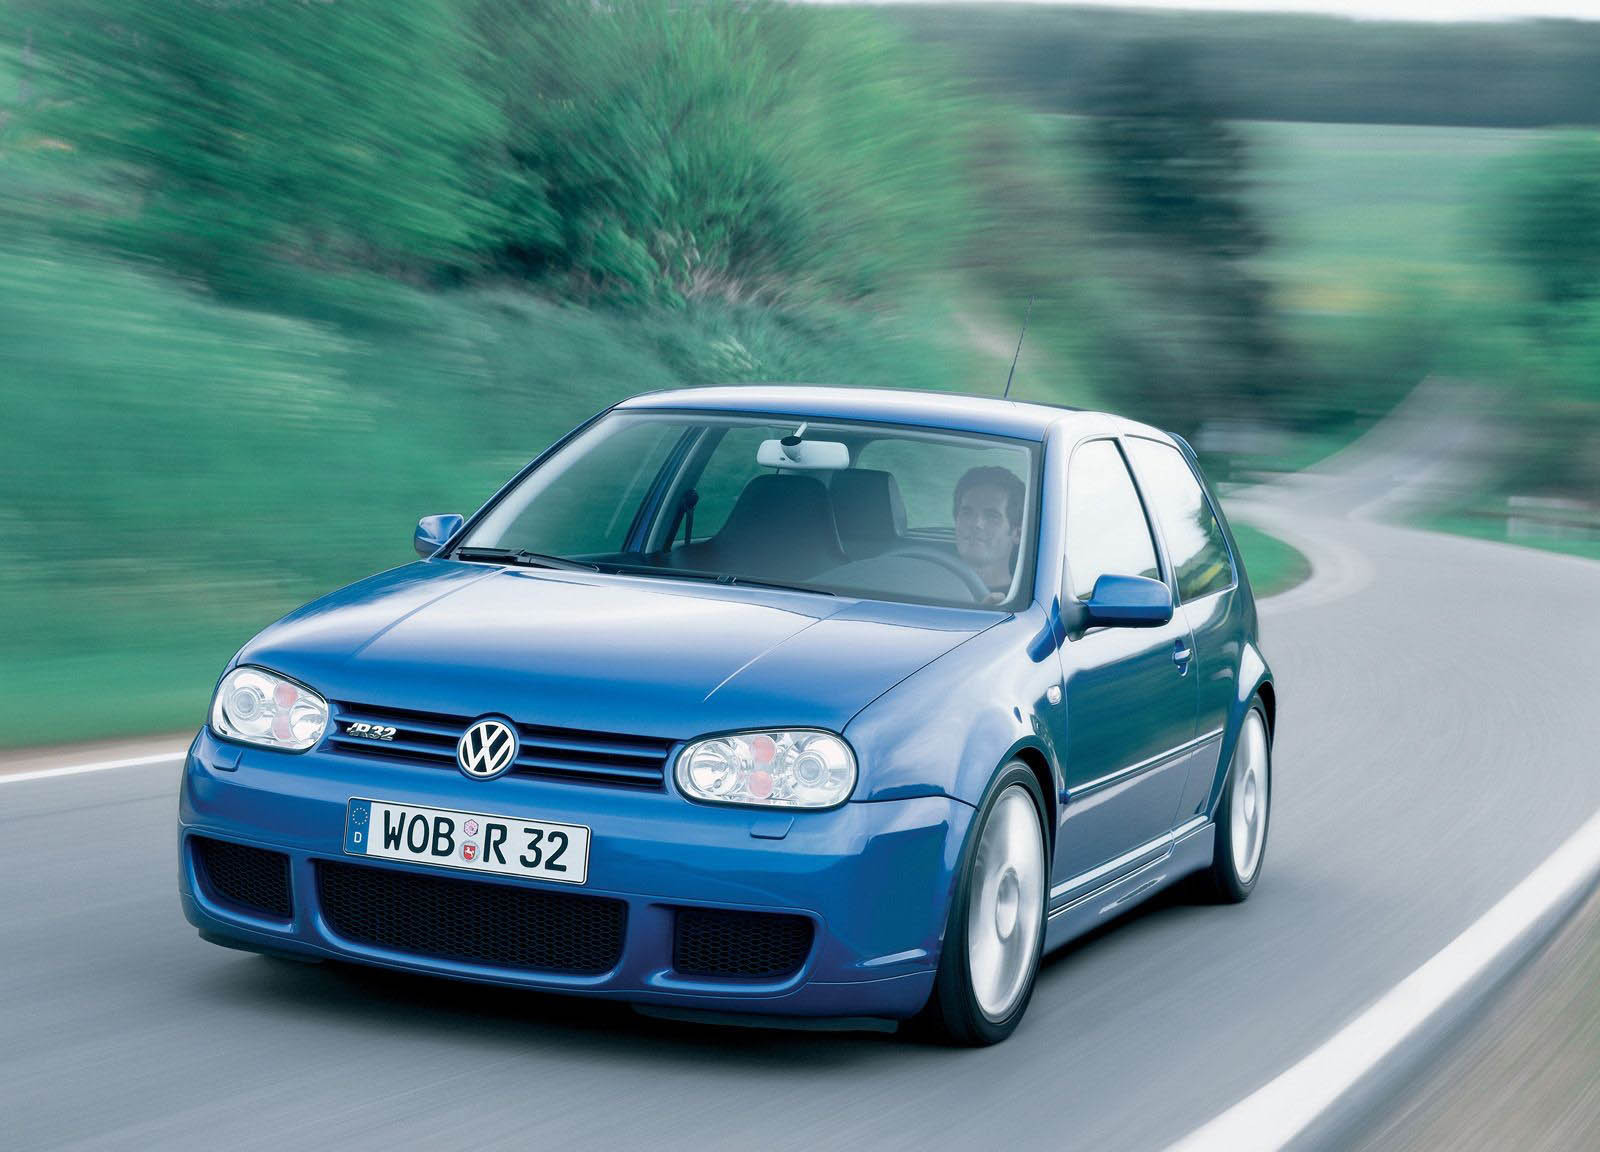 2003 volkswagen golf r32